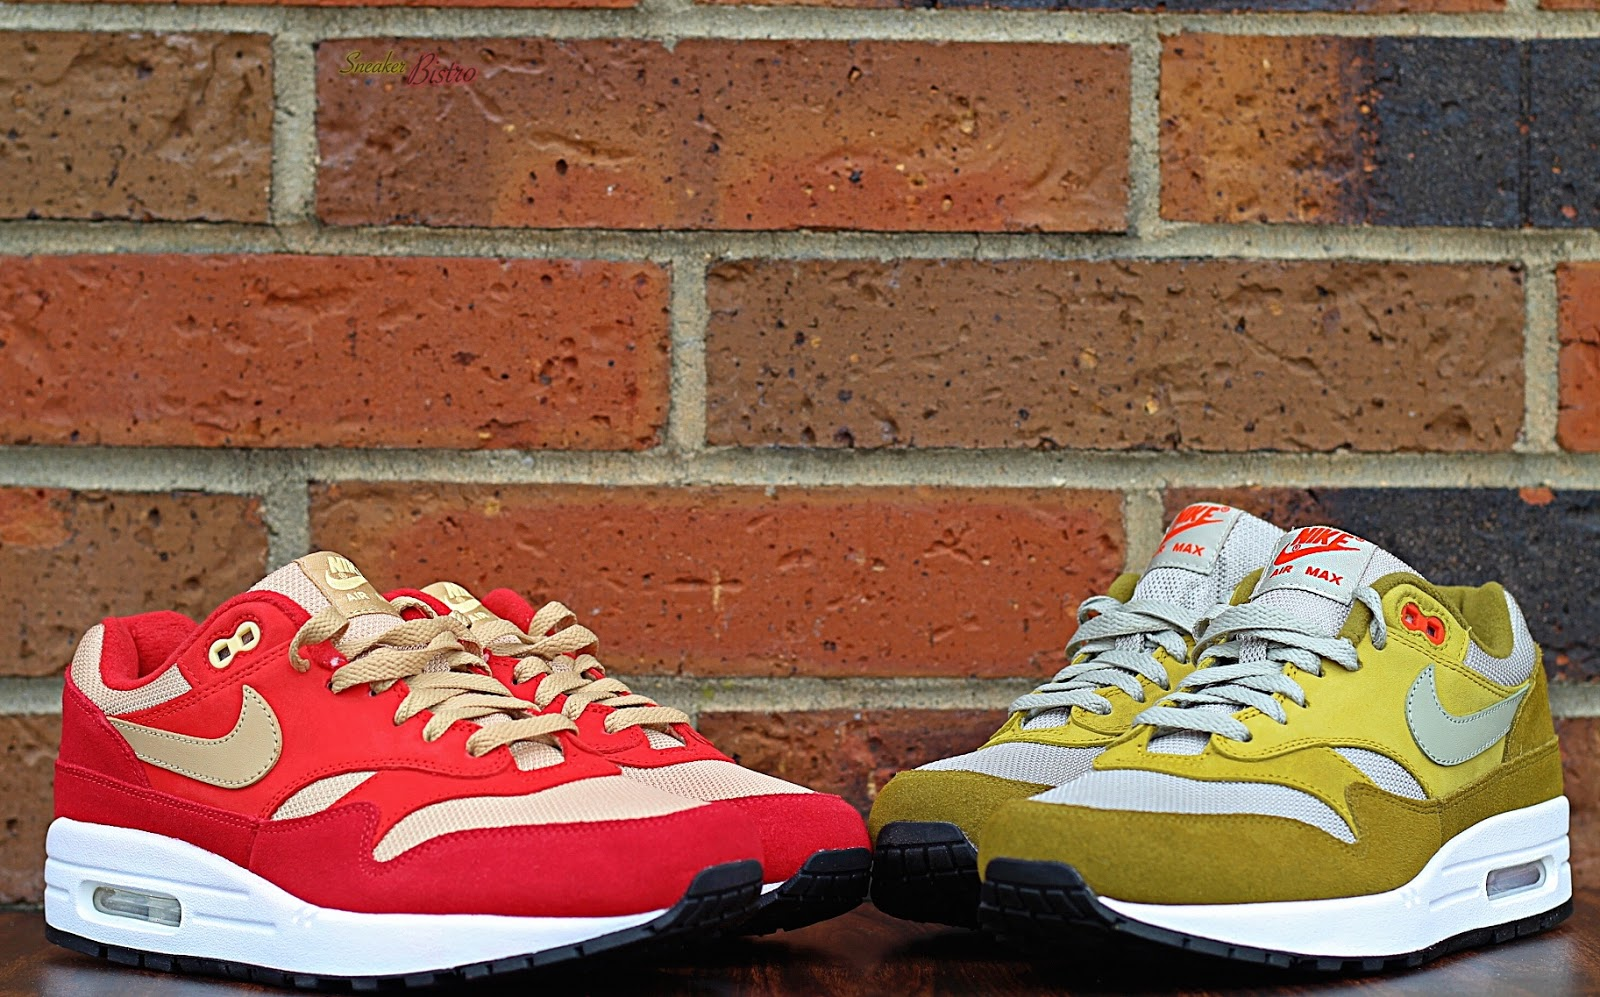 purchase cheap d821a 87ff3 SNEAKER BISTRO - Streetwear Served w Class Nike Air Max 1 Premium Retro  Red Curry  Green Curry